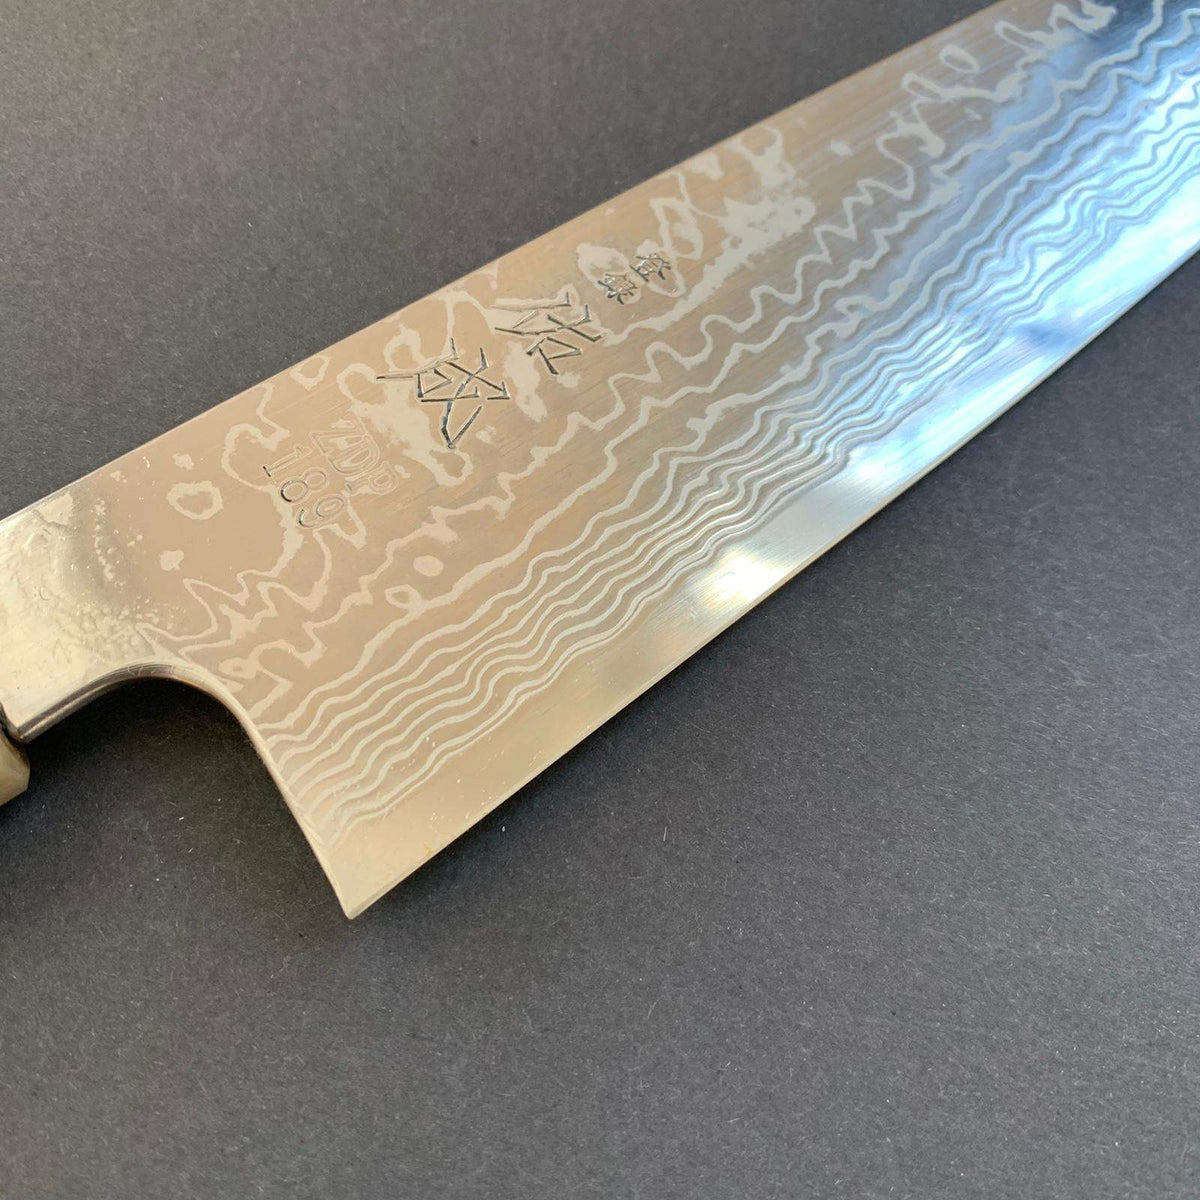 Kiritsuke knife, ZDP189 powder steel, damascus finish - Sukenari